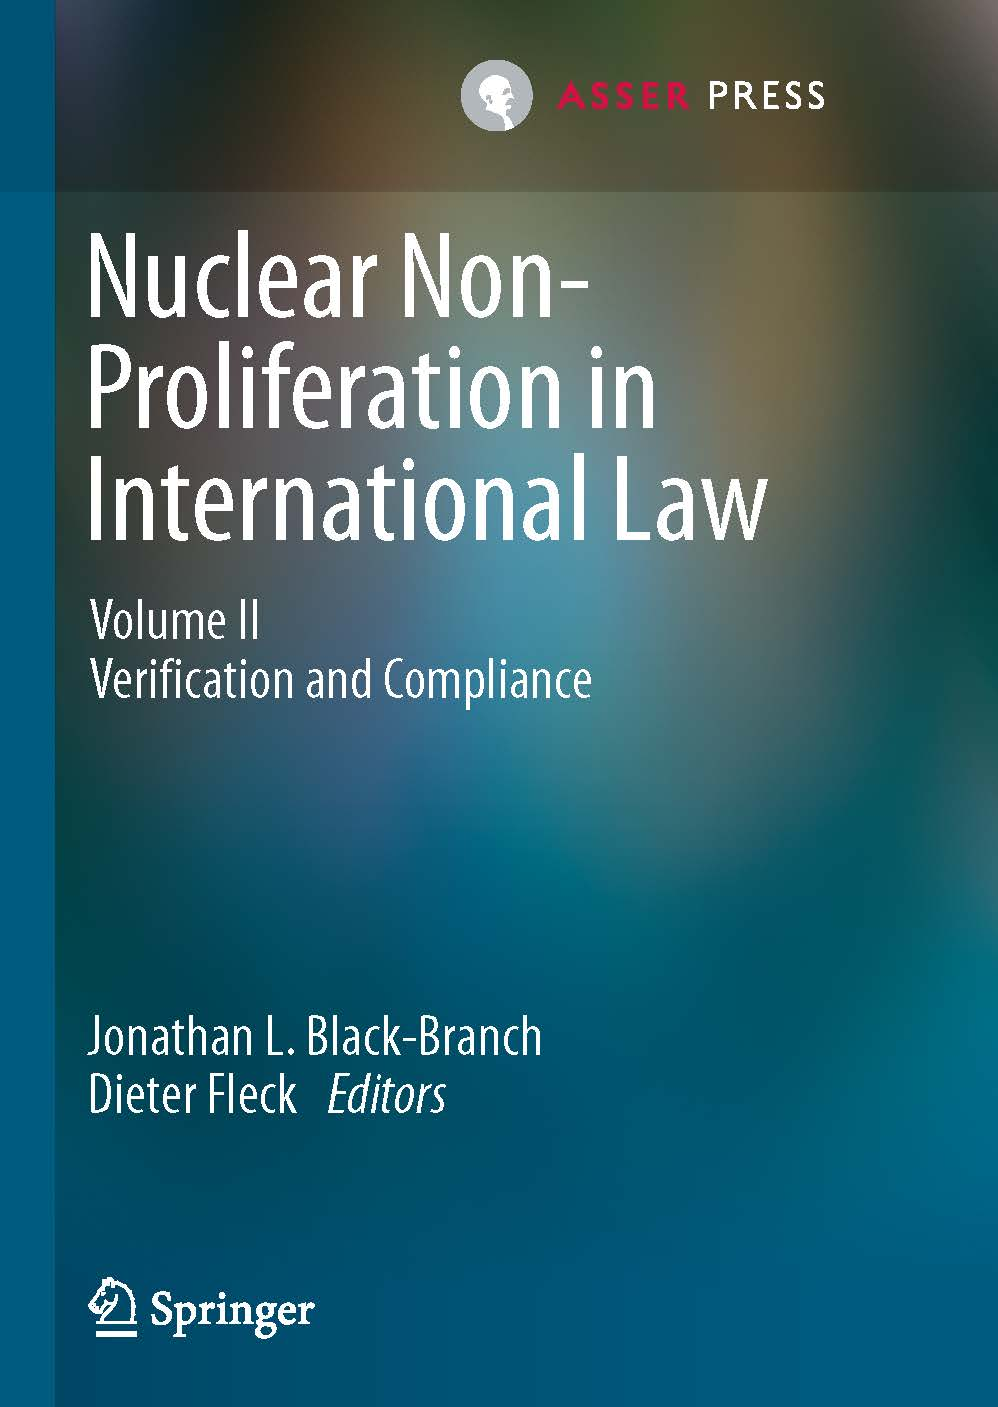 Nuclear Non-Proliferation in International Law - Volume II - Verification and Compliance